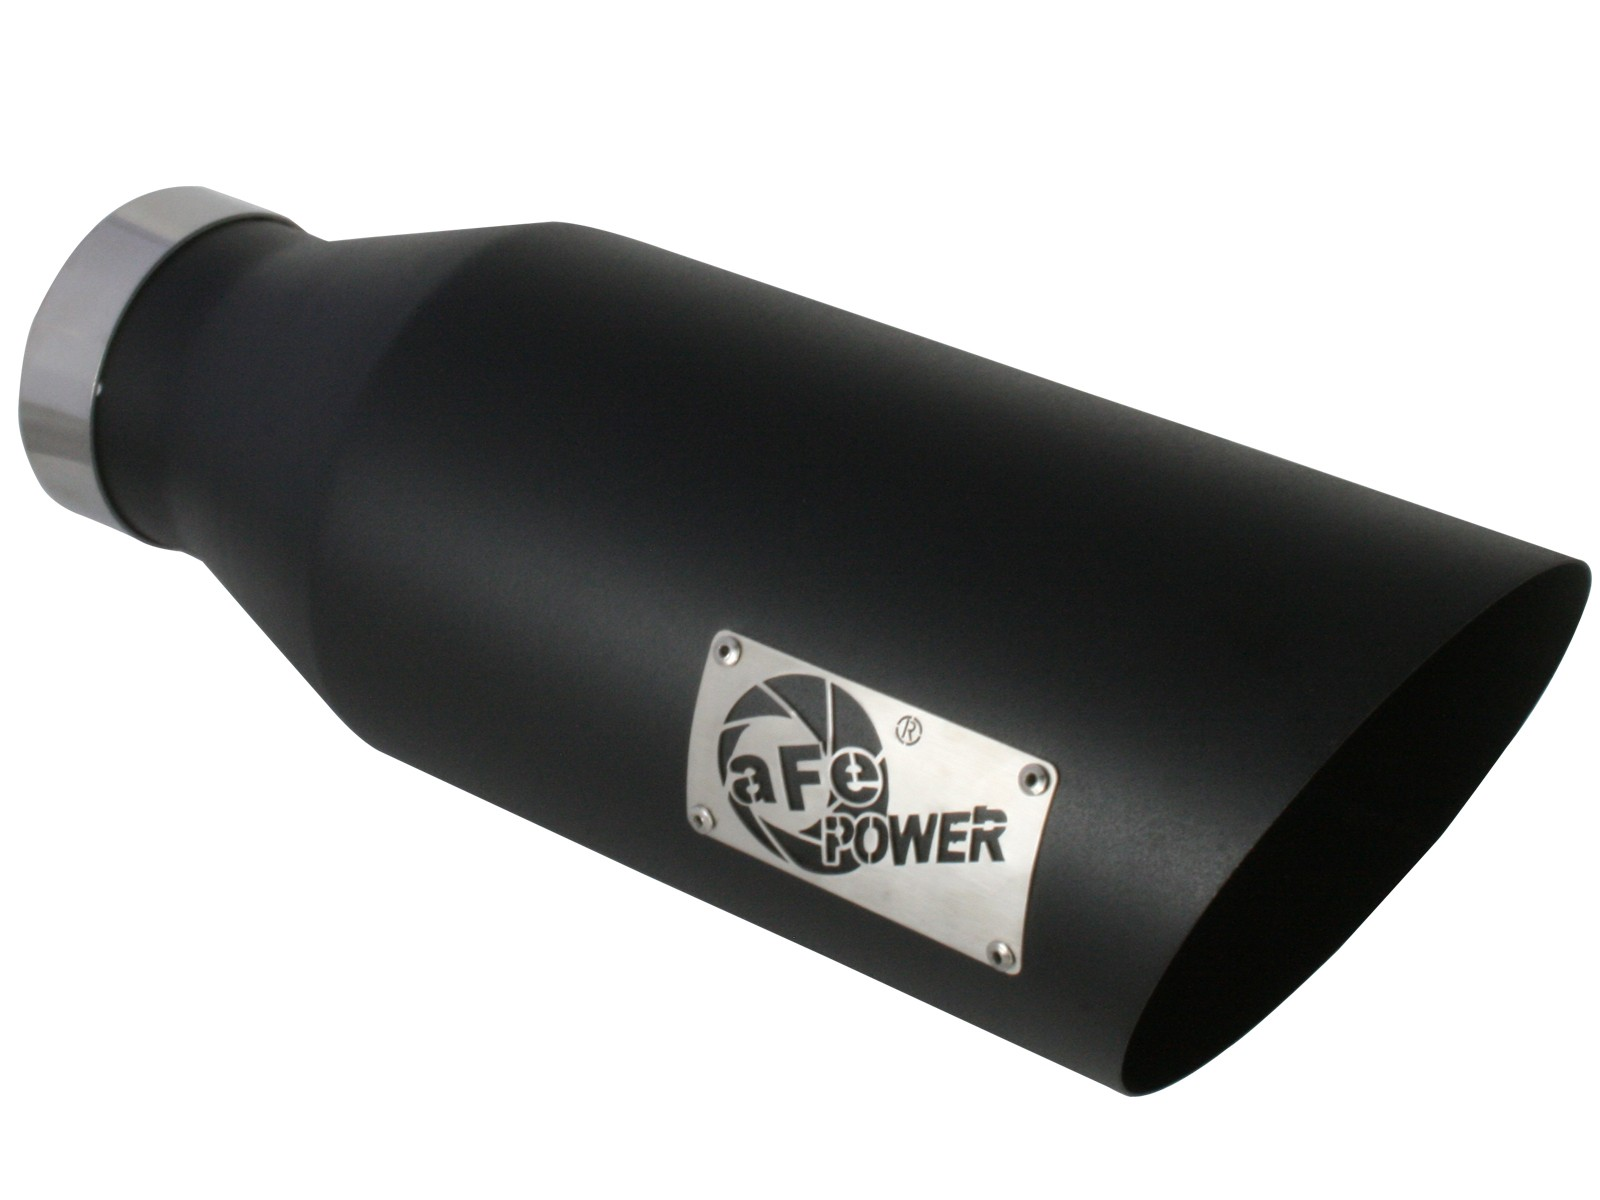 "aFe POWER 49-92023-B MACH Force-Xp 4"" 409 Stainless Steel Exhaust Tip"